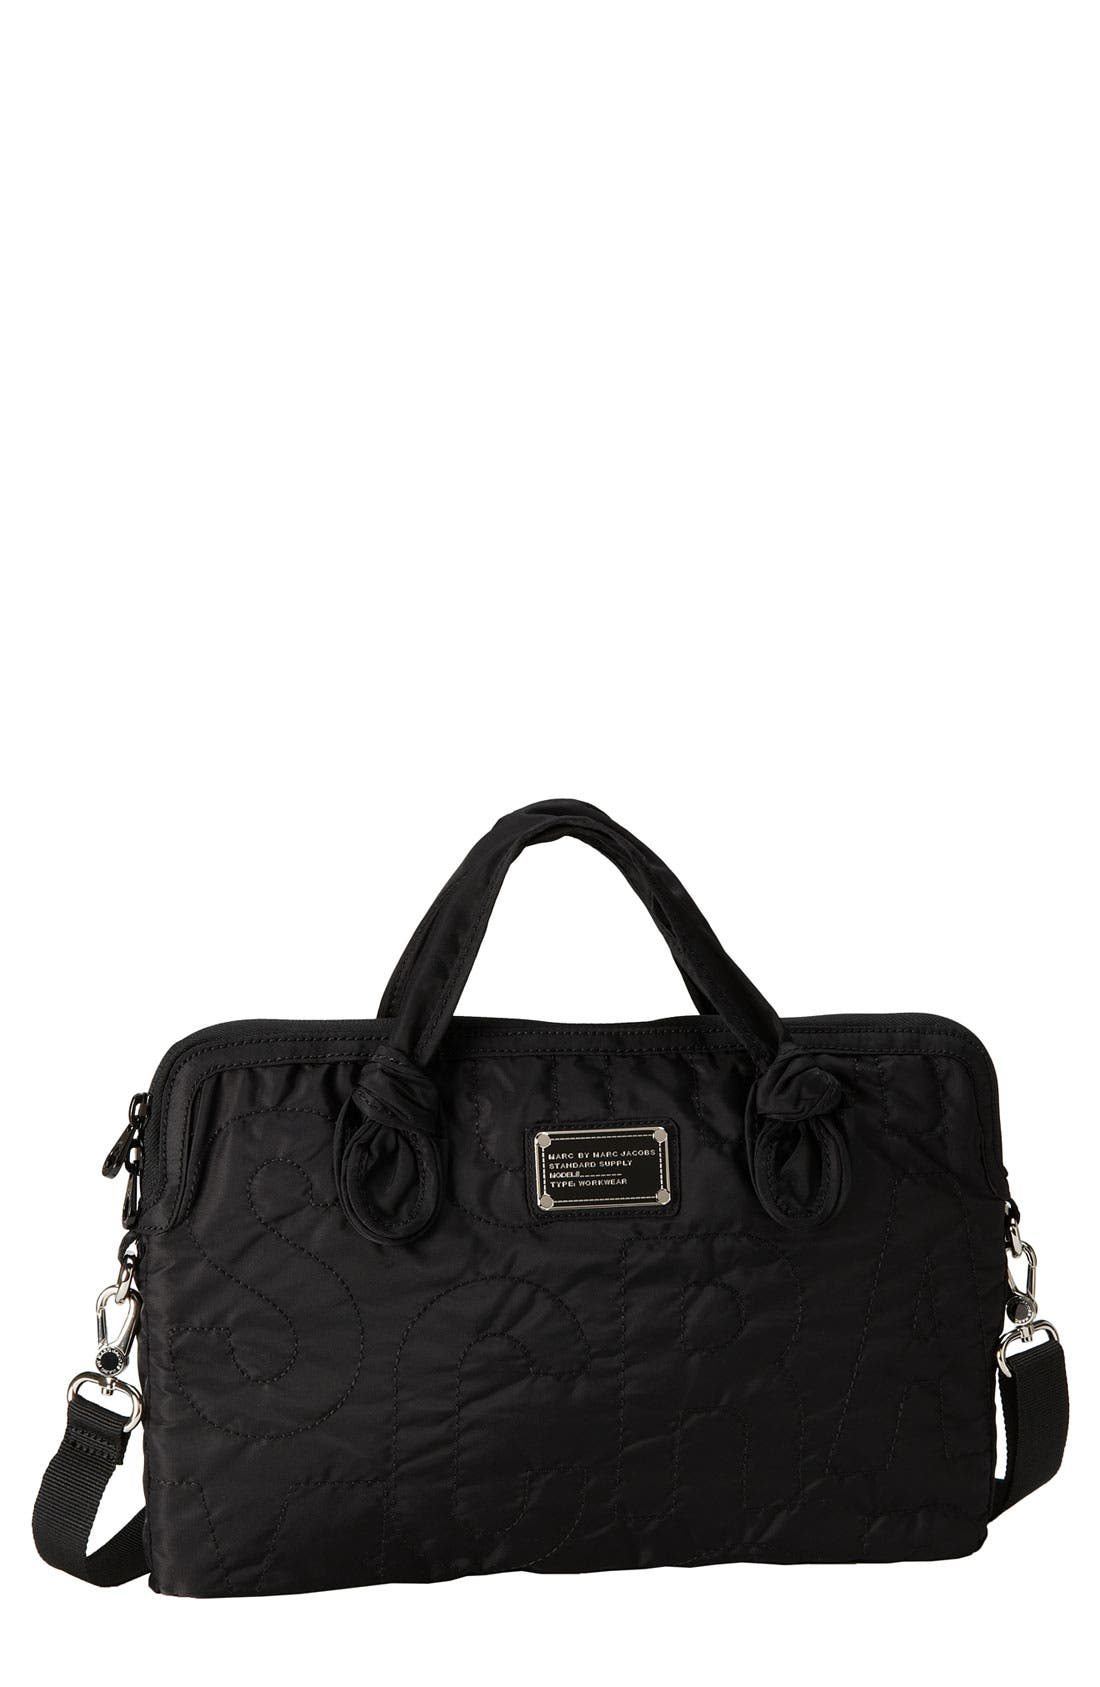 MARC JACOBS MARC BY MARC JACOBS 'Pretty Nylon - Computer Commuter' Bag, Main, color, 001